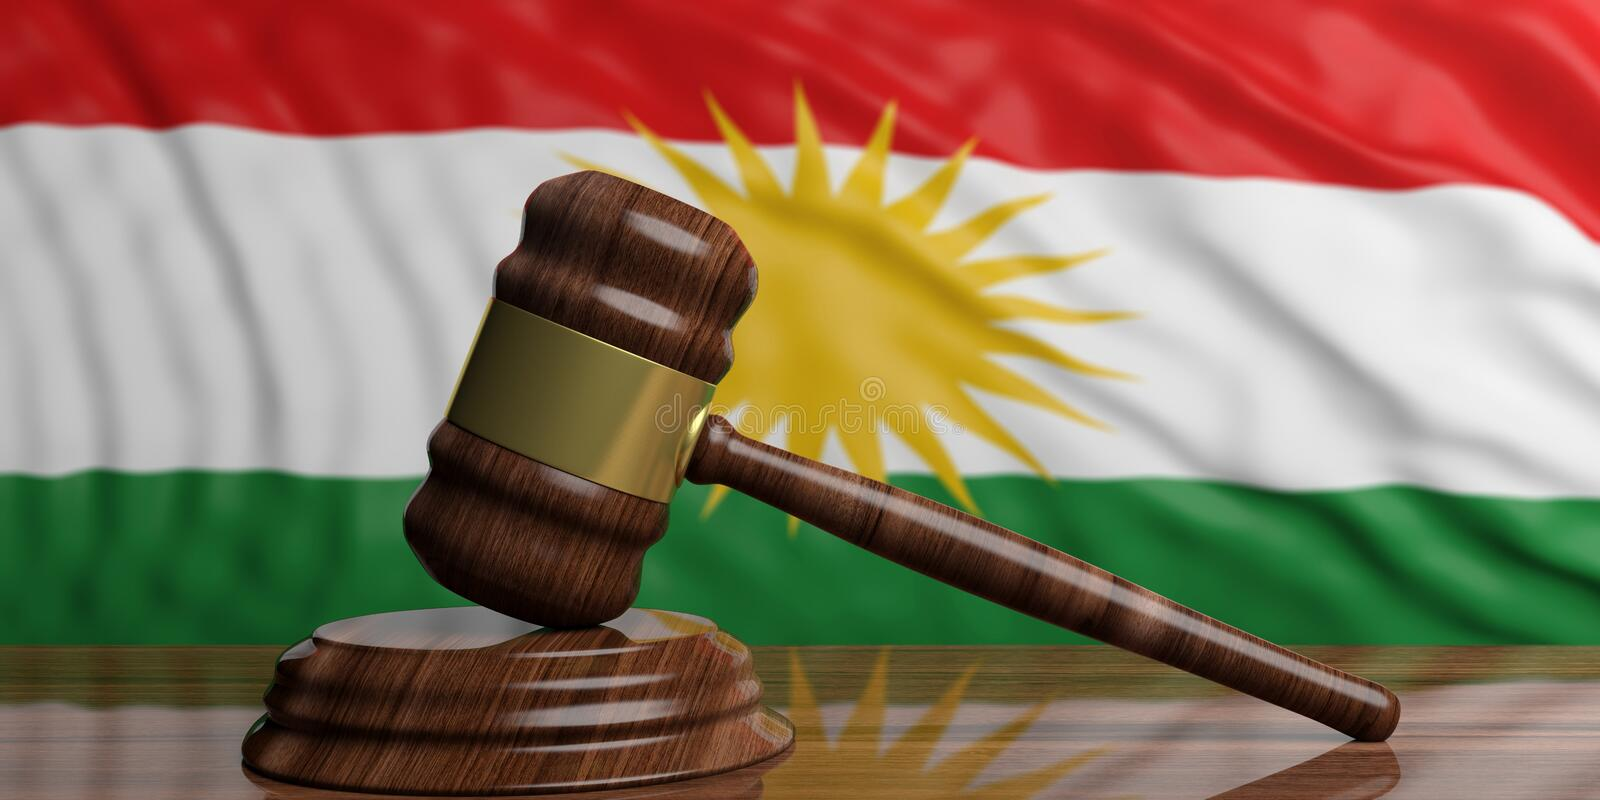 The waving Kurdistan flag behind wooden and gold auction or justice gavel. 3d illustration royalty free illustration